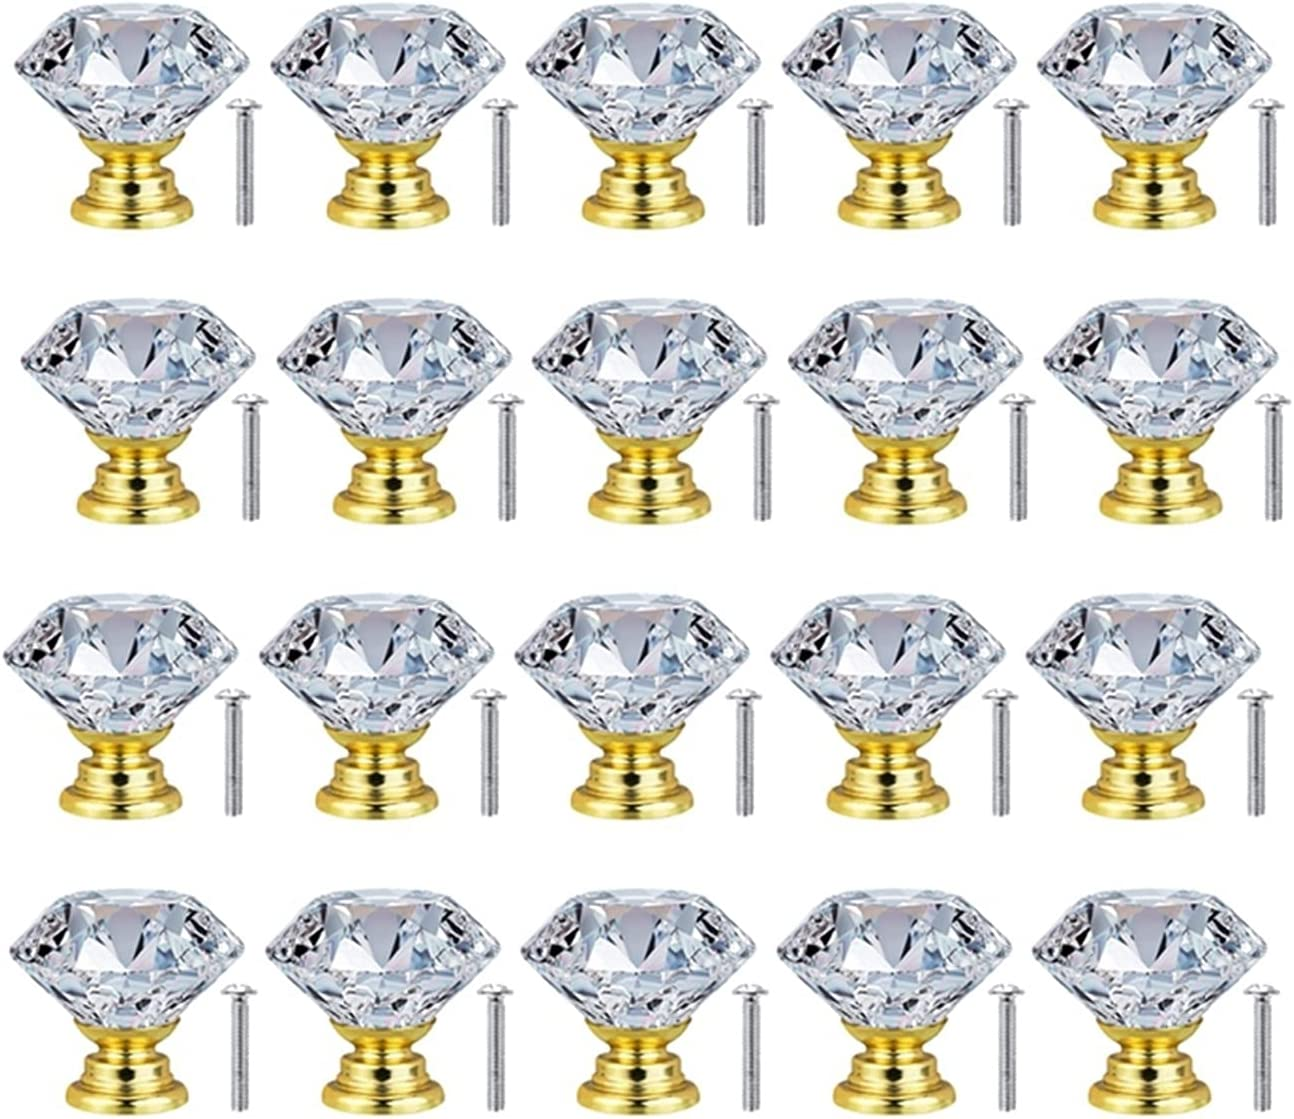 AILIUQIAN 20Pc 30mm Crystal Glass Max 55% OFF Door Knobs specialty shop Cupboard Cabinet Dr